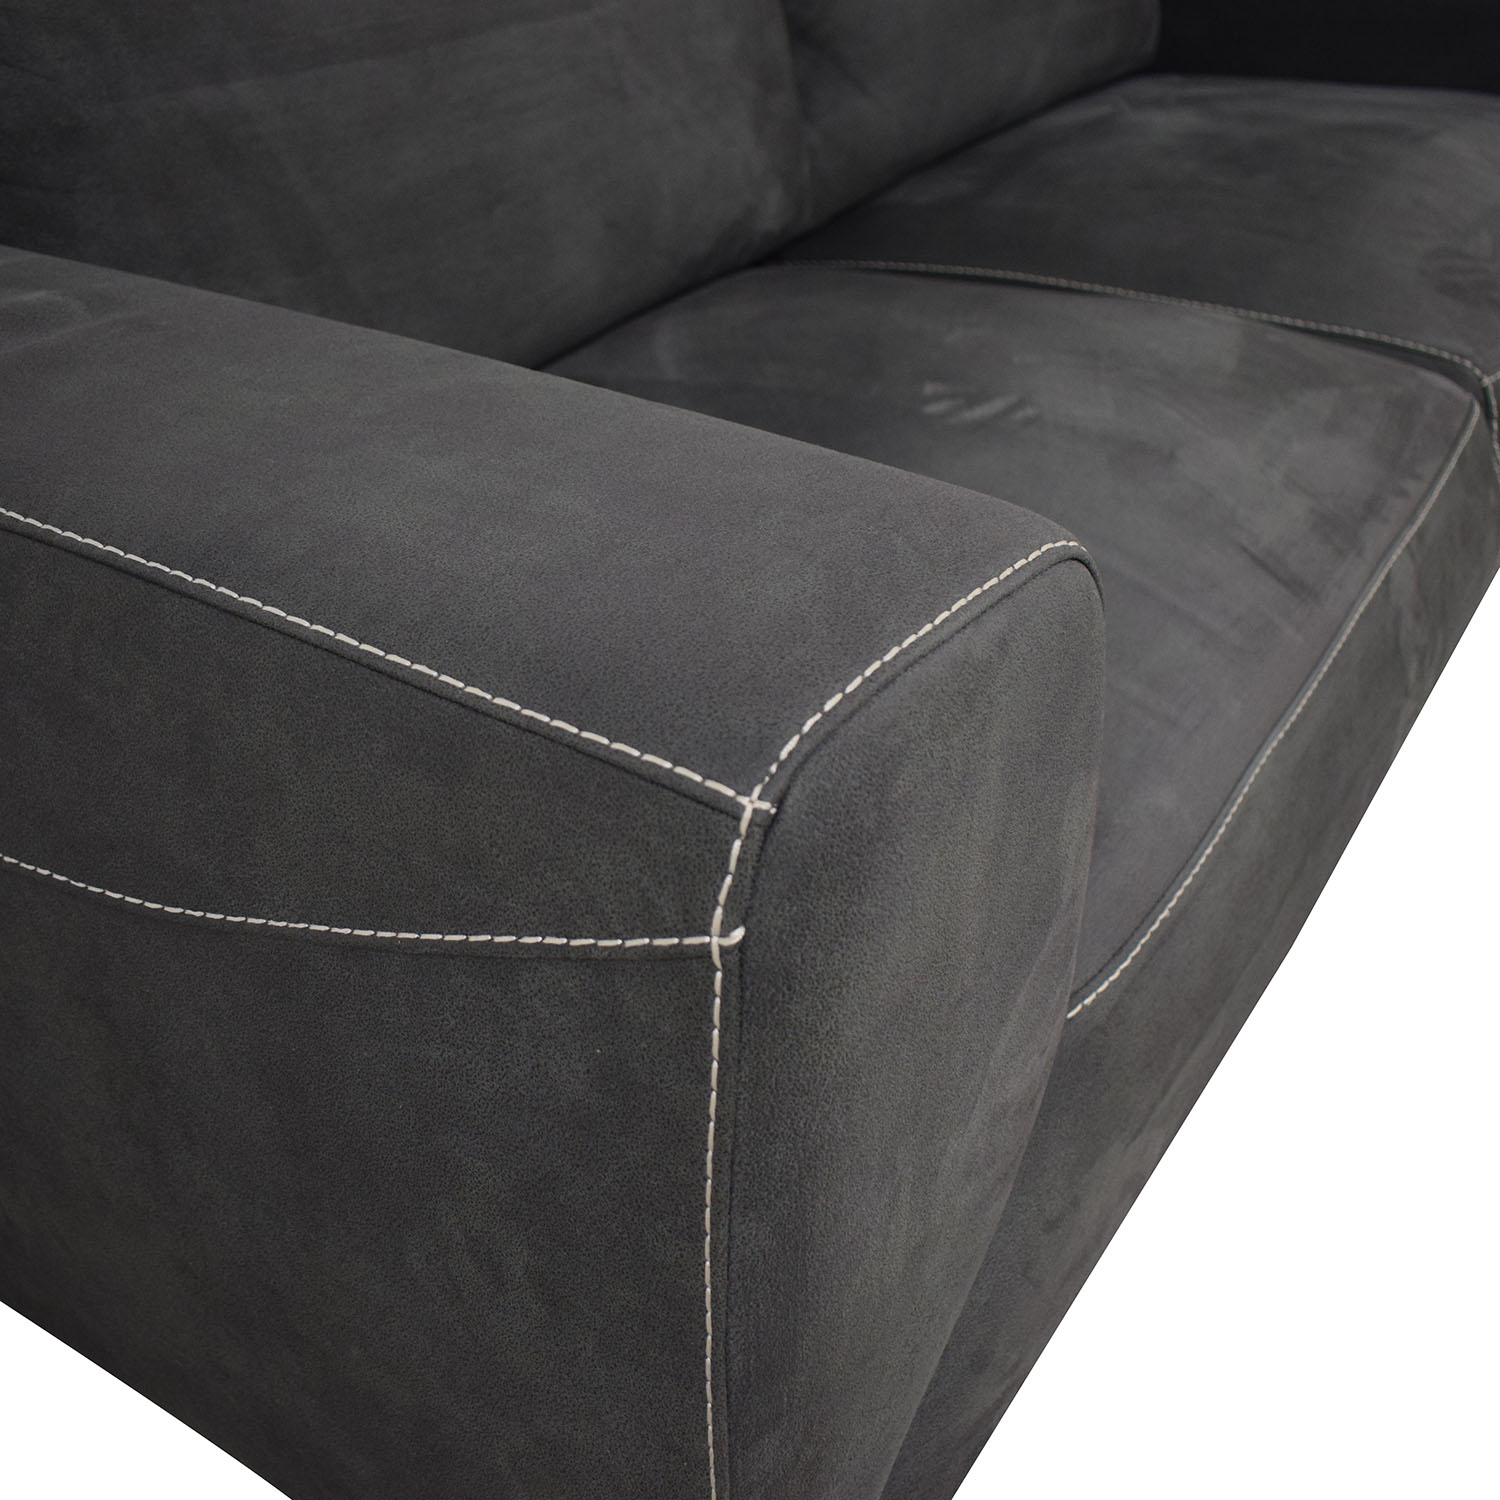 Monarch Furniture Monarch Furniture Grey Couch second hand